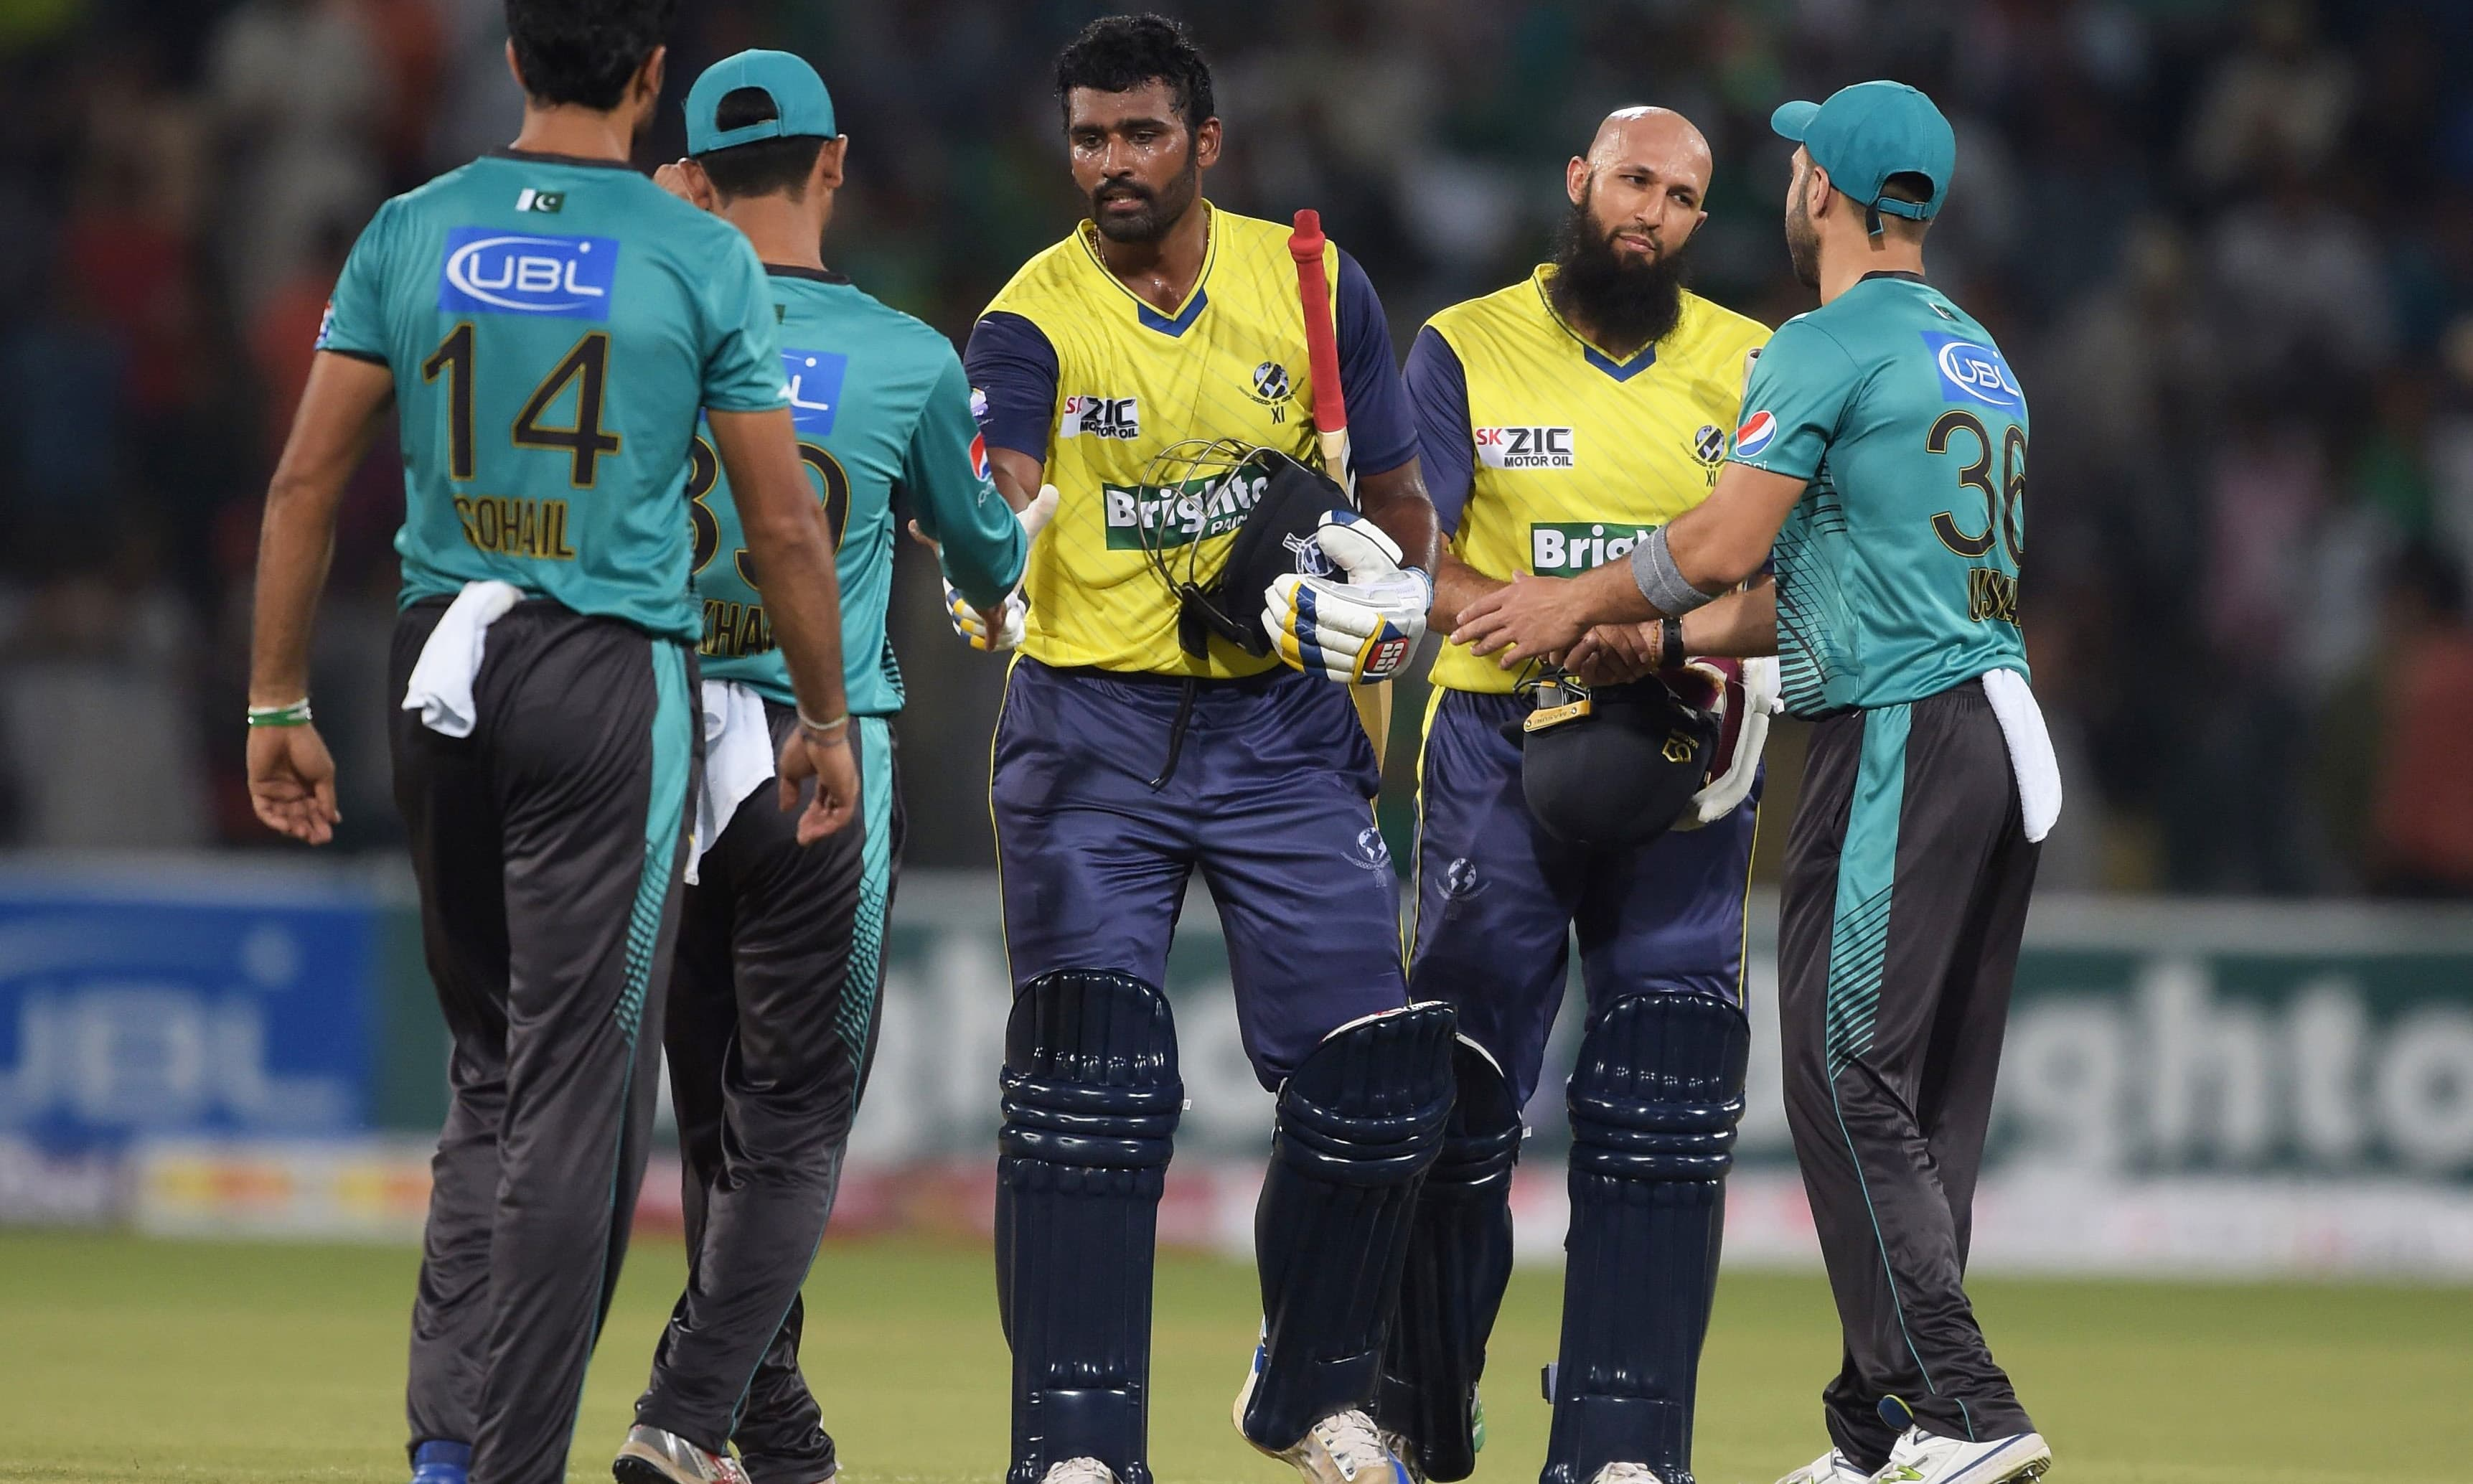 World XI batsmen Hashim Amla (2R) and Thisara Perera (C) shake hands with Pakistani cricketers at the end of the second match. —AFP